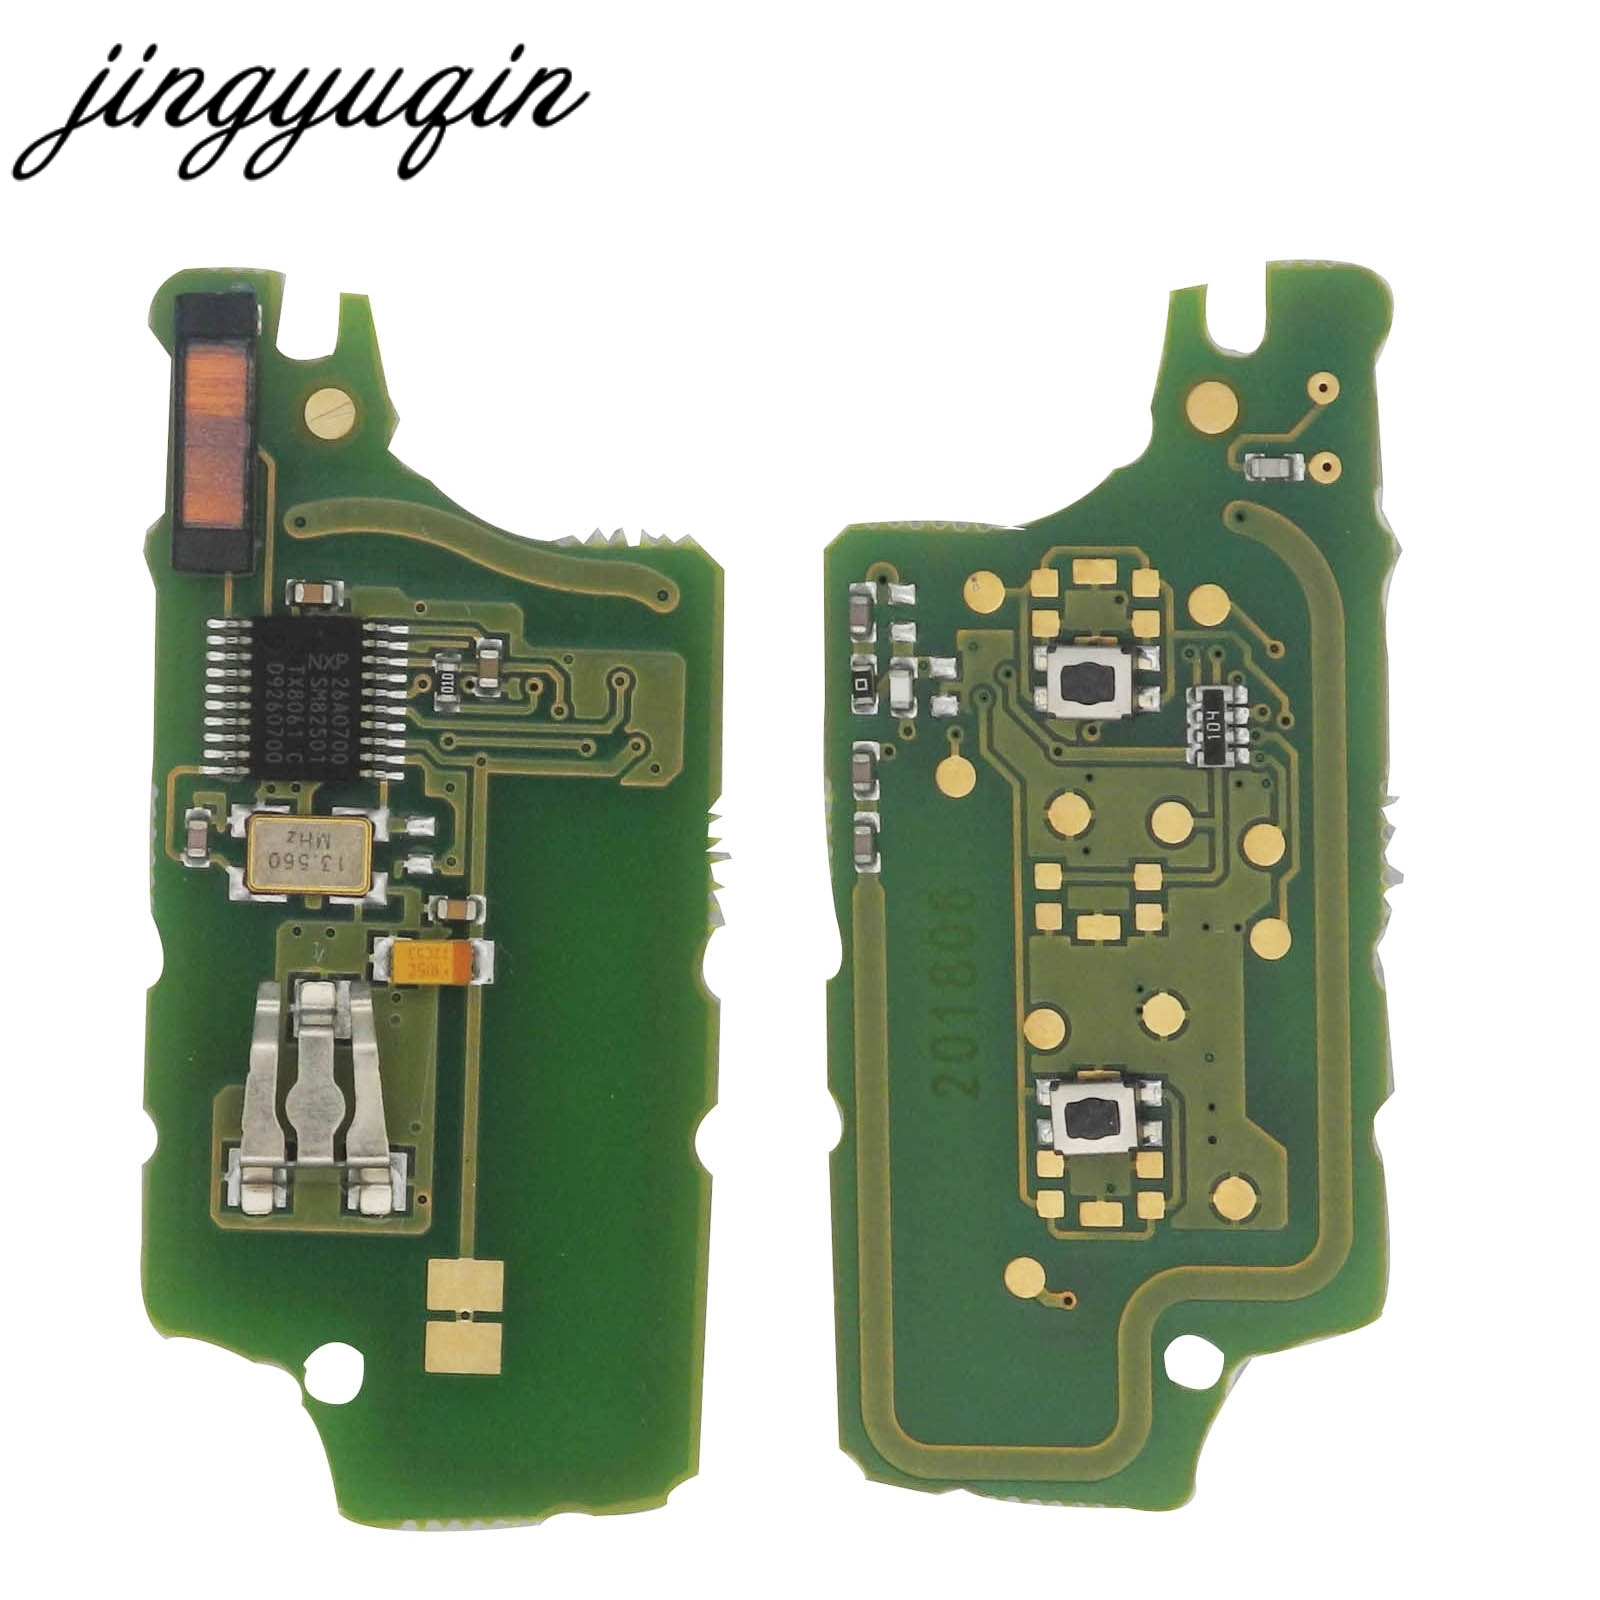 jingyuqin 2 Button Remote Flip Car Key Electronic Board For Peugeot 307 308 408 407 207 Citroen C2 C3 C4 PICASSO PCF7961 CE0536 jingyuqin silicone case for peugeot 208 207 308 rcz 408 407 307 206 for citroen c4 c5 c3 c2 c4l xsara picasso car flip key cover